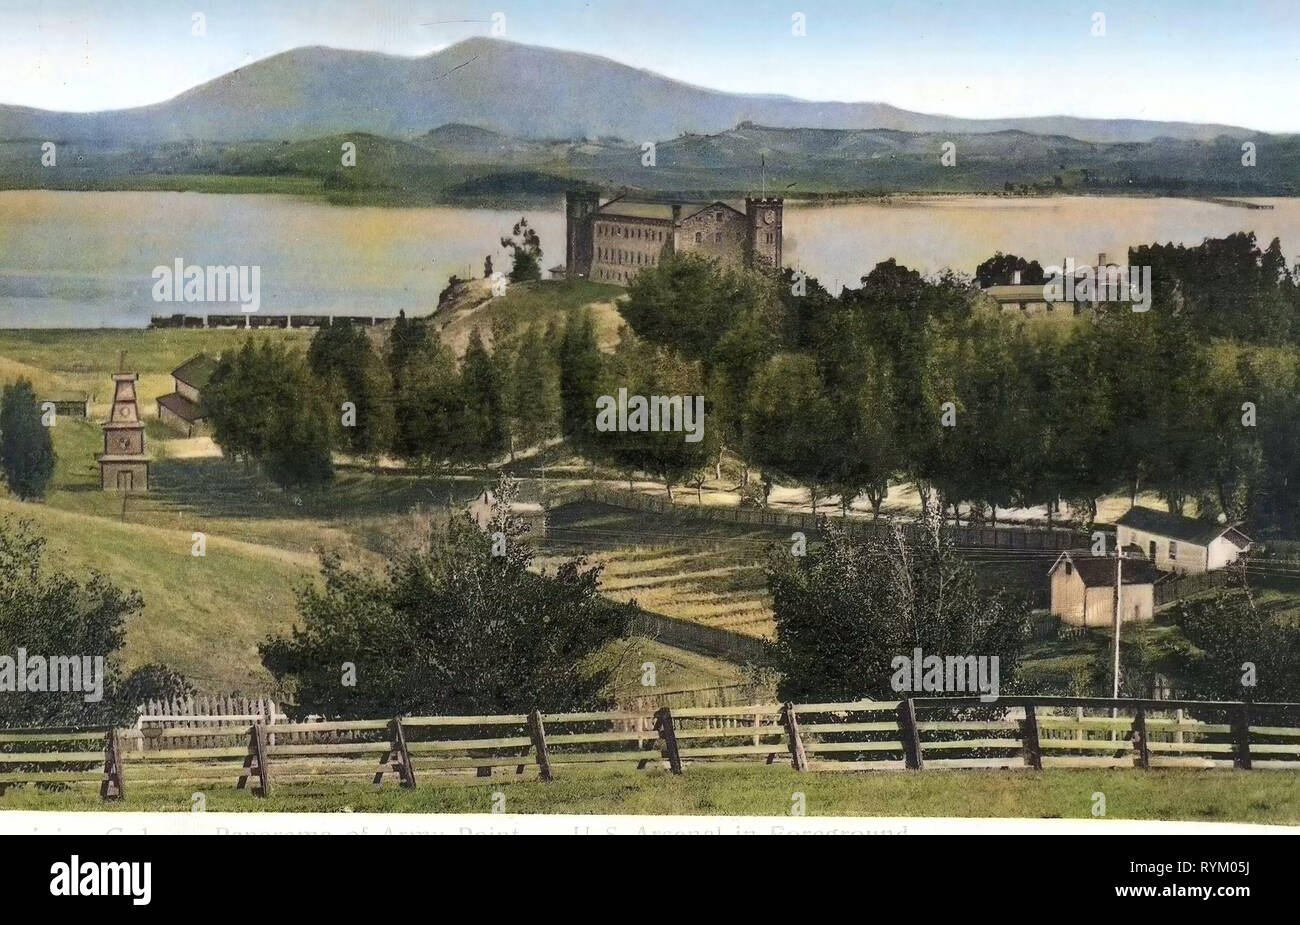 Arsenals in the United States, Benicia, California, 1906, Panorama of Army Point, U.S. Arsenal in Foreground - Stock Image